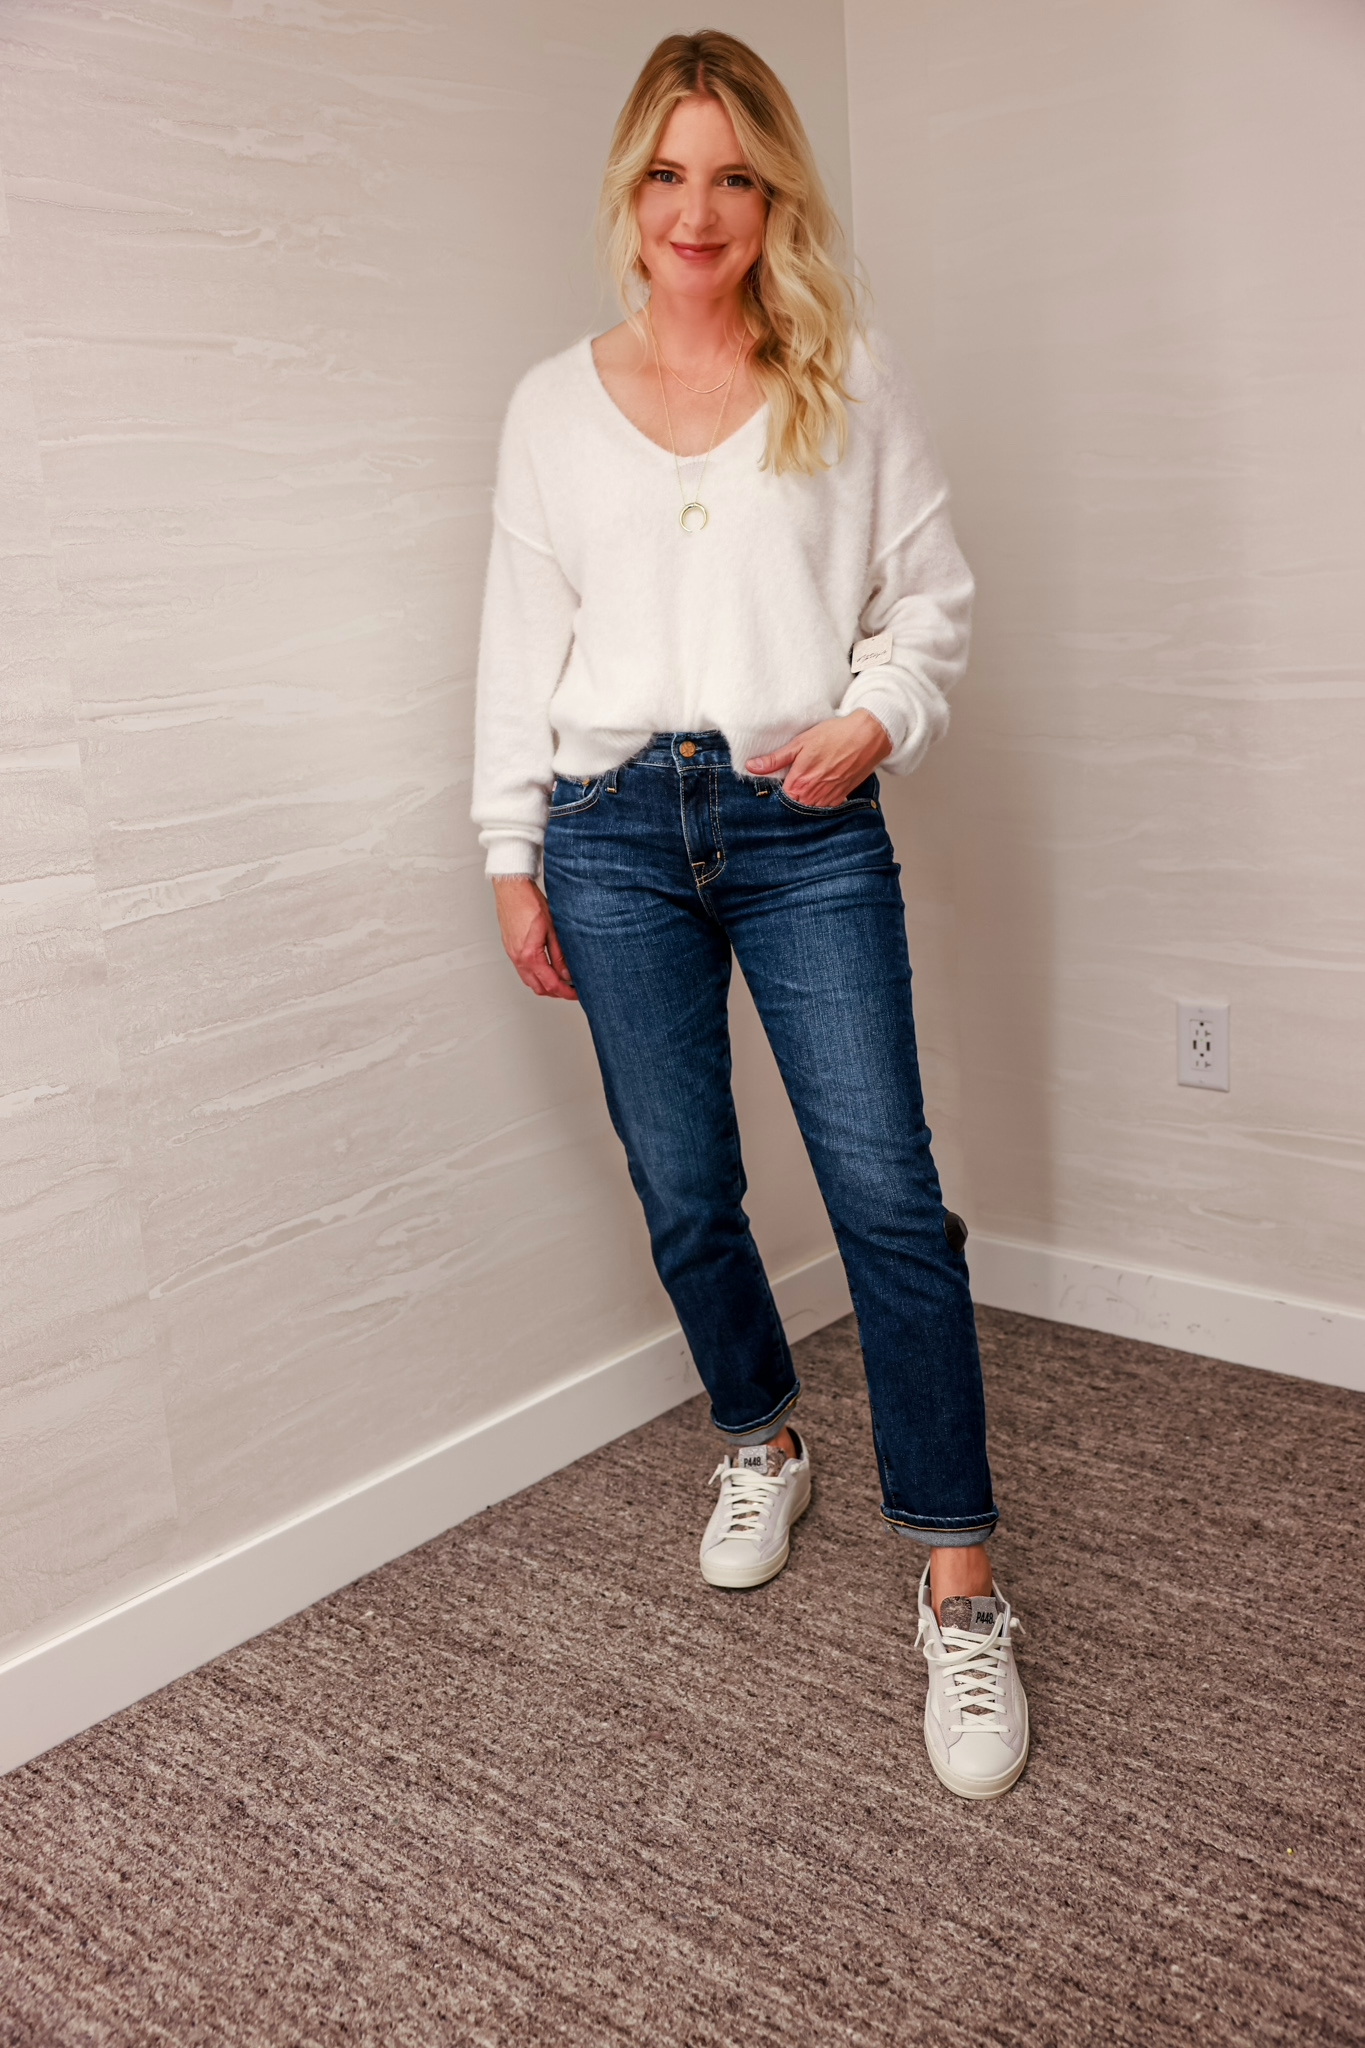 Nordstrom Anniversary Sale 2021 - Nordstrom Anniversary Sale Outfits on Erin Busbee - Free People White Princess Sweater with AG Jeans